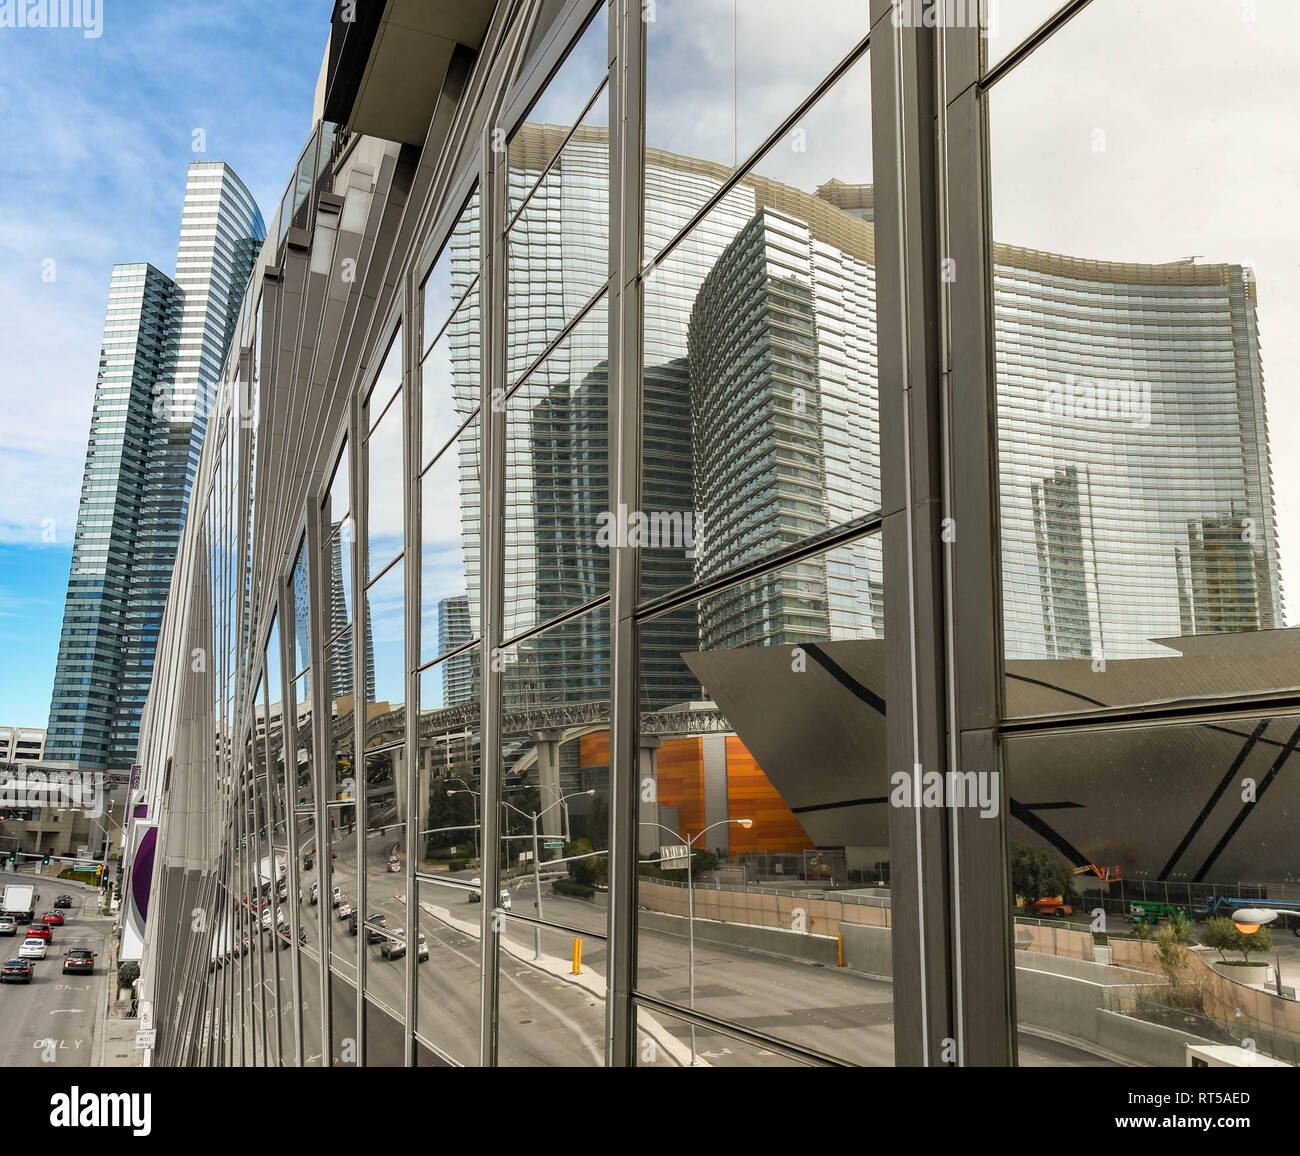 LAS VEGAS, NEVADA, USA - FEBRUARY 2019: The building of the Aria hotel reflected in large panels of glass on another building on Las Vegas Boulevard,  - Stock Image